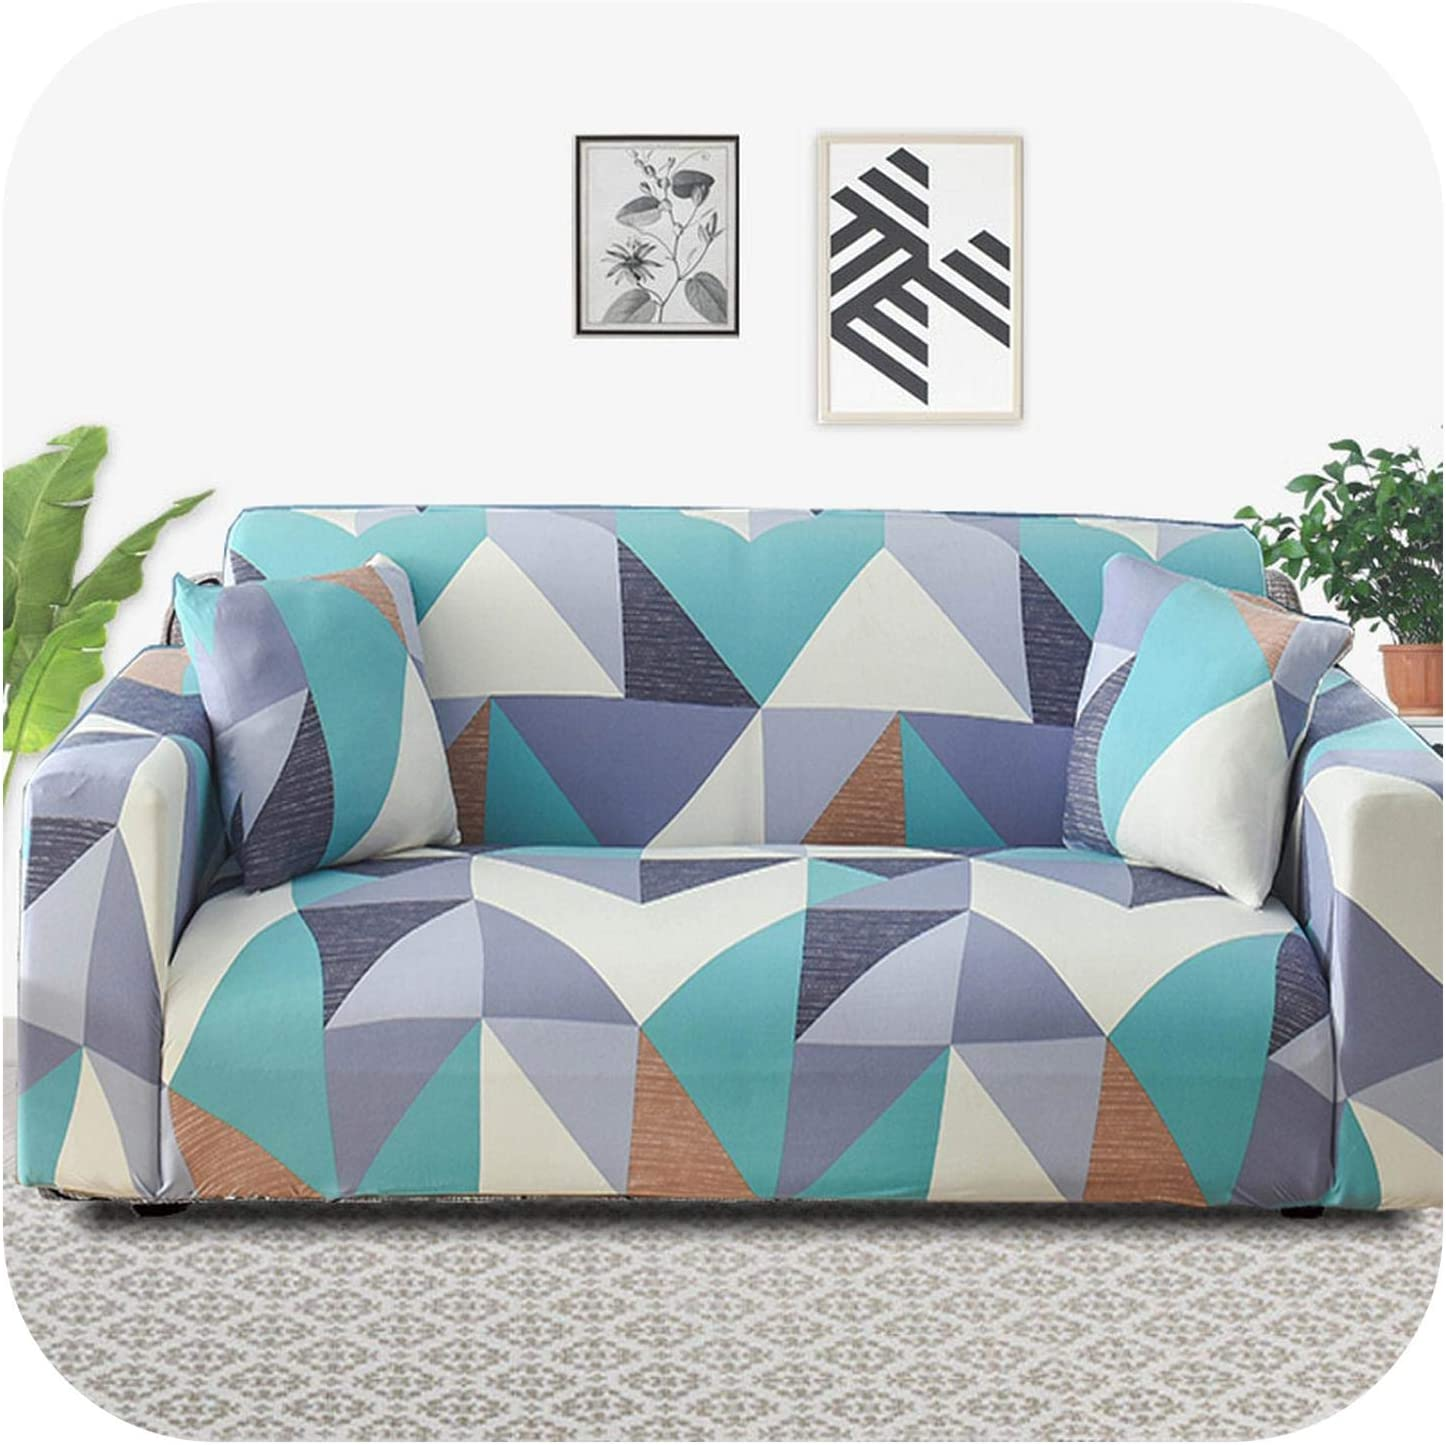 FAT Ranking TOP5 SHEEP Pmxxy Geometric Sofa Cover Spandex Living Ela for Bombing new work Room